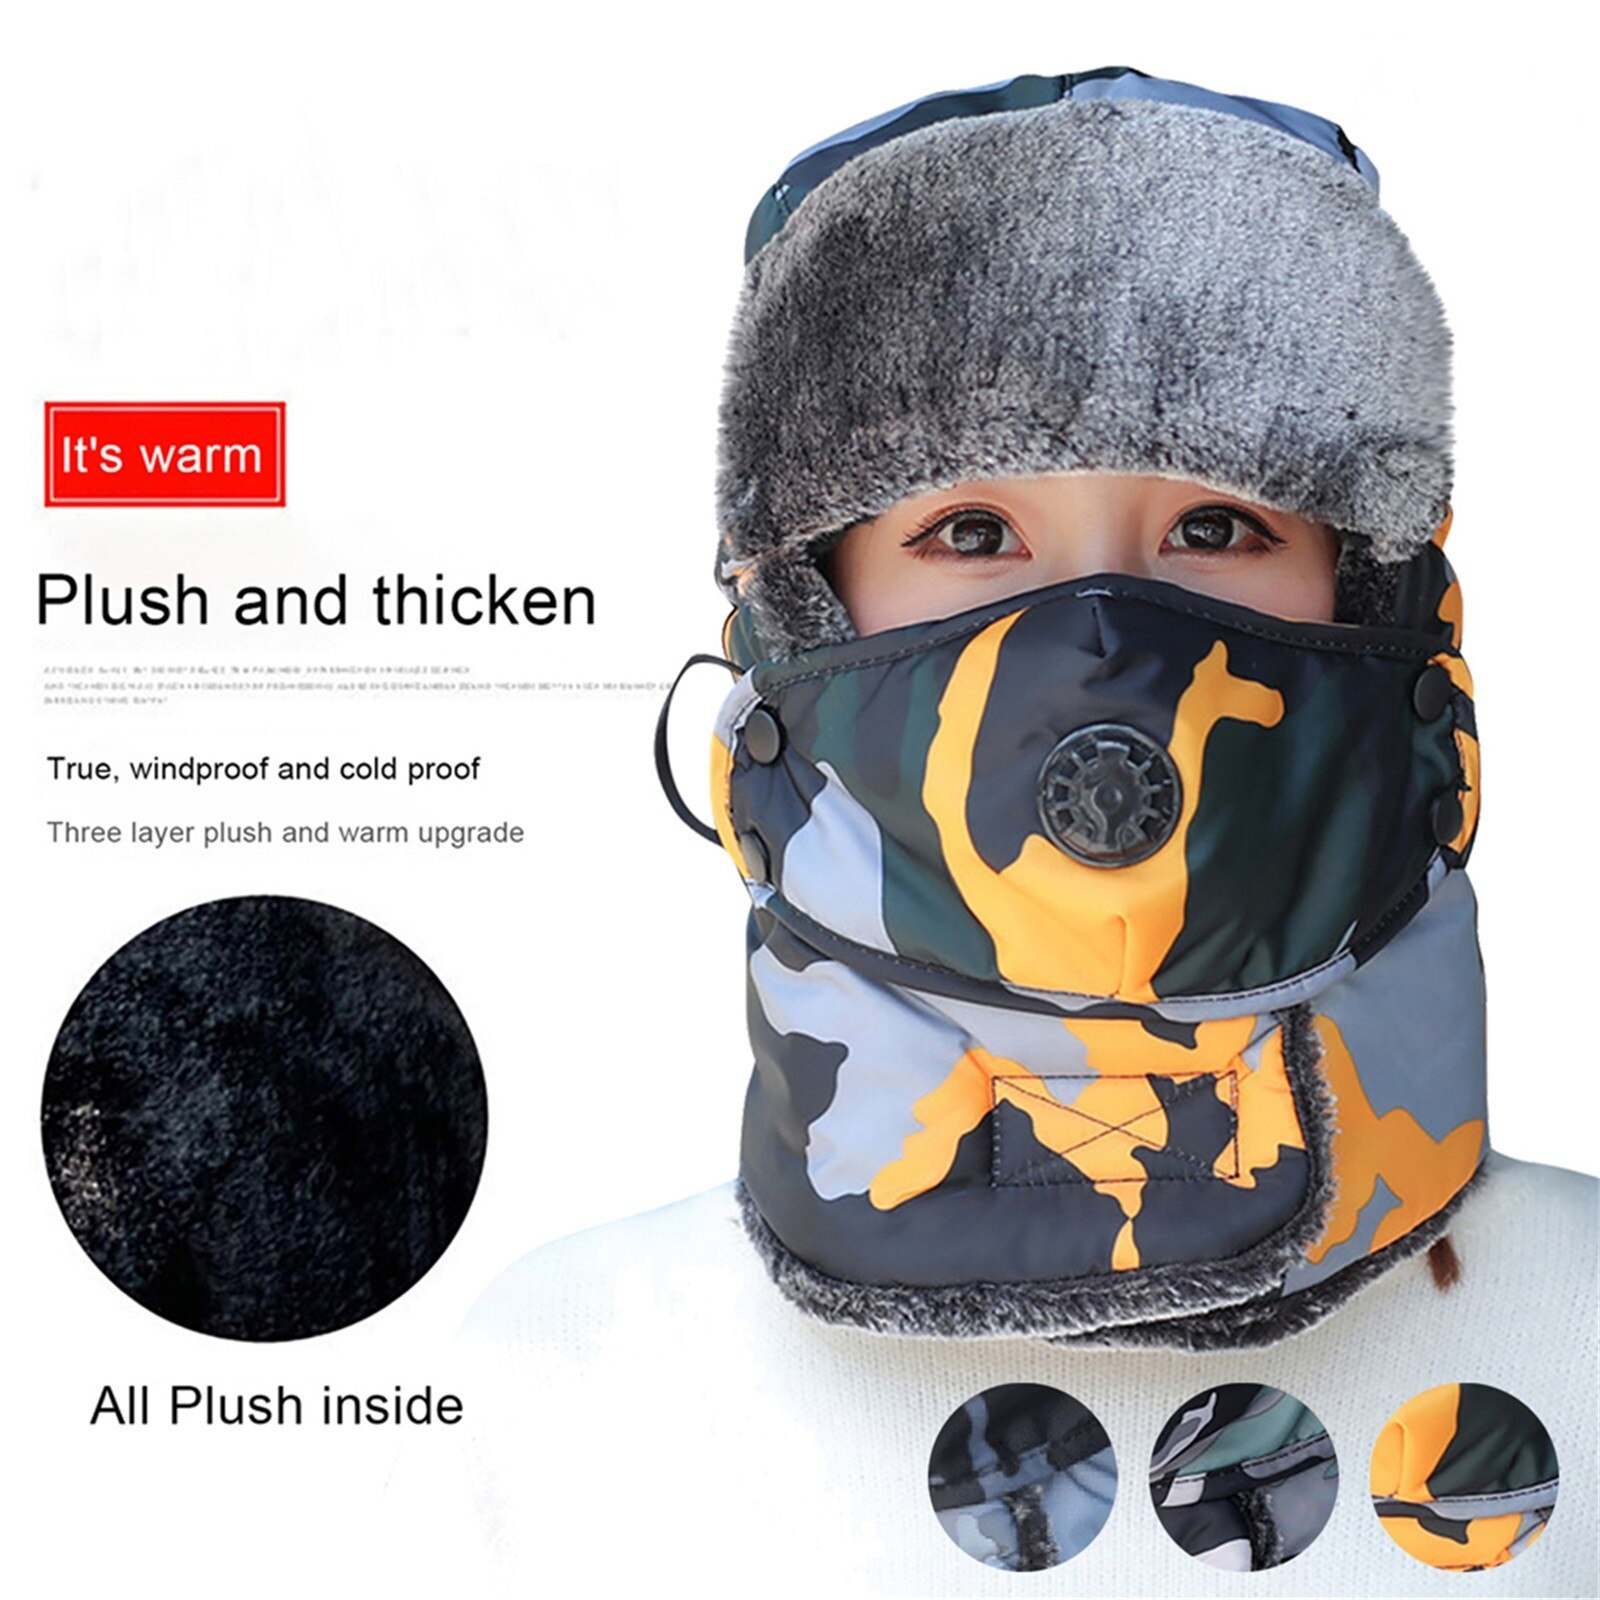 Adults Autumn Winter Warm Thicken Outdoor Cycling Windproof Protection Face Mask Fashion Camouflage